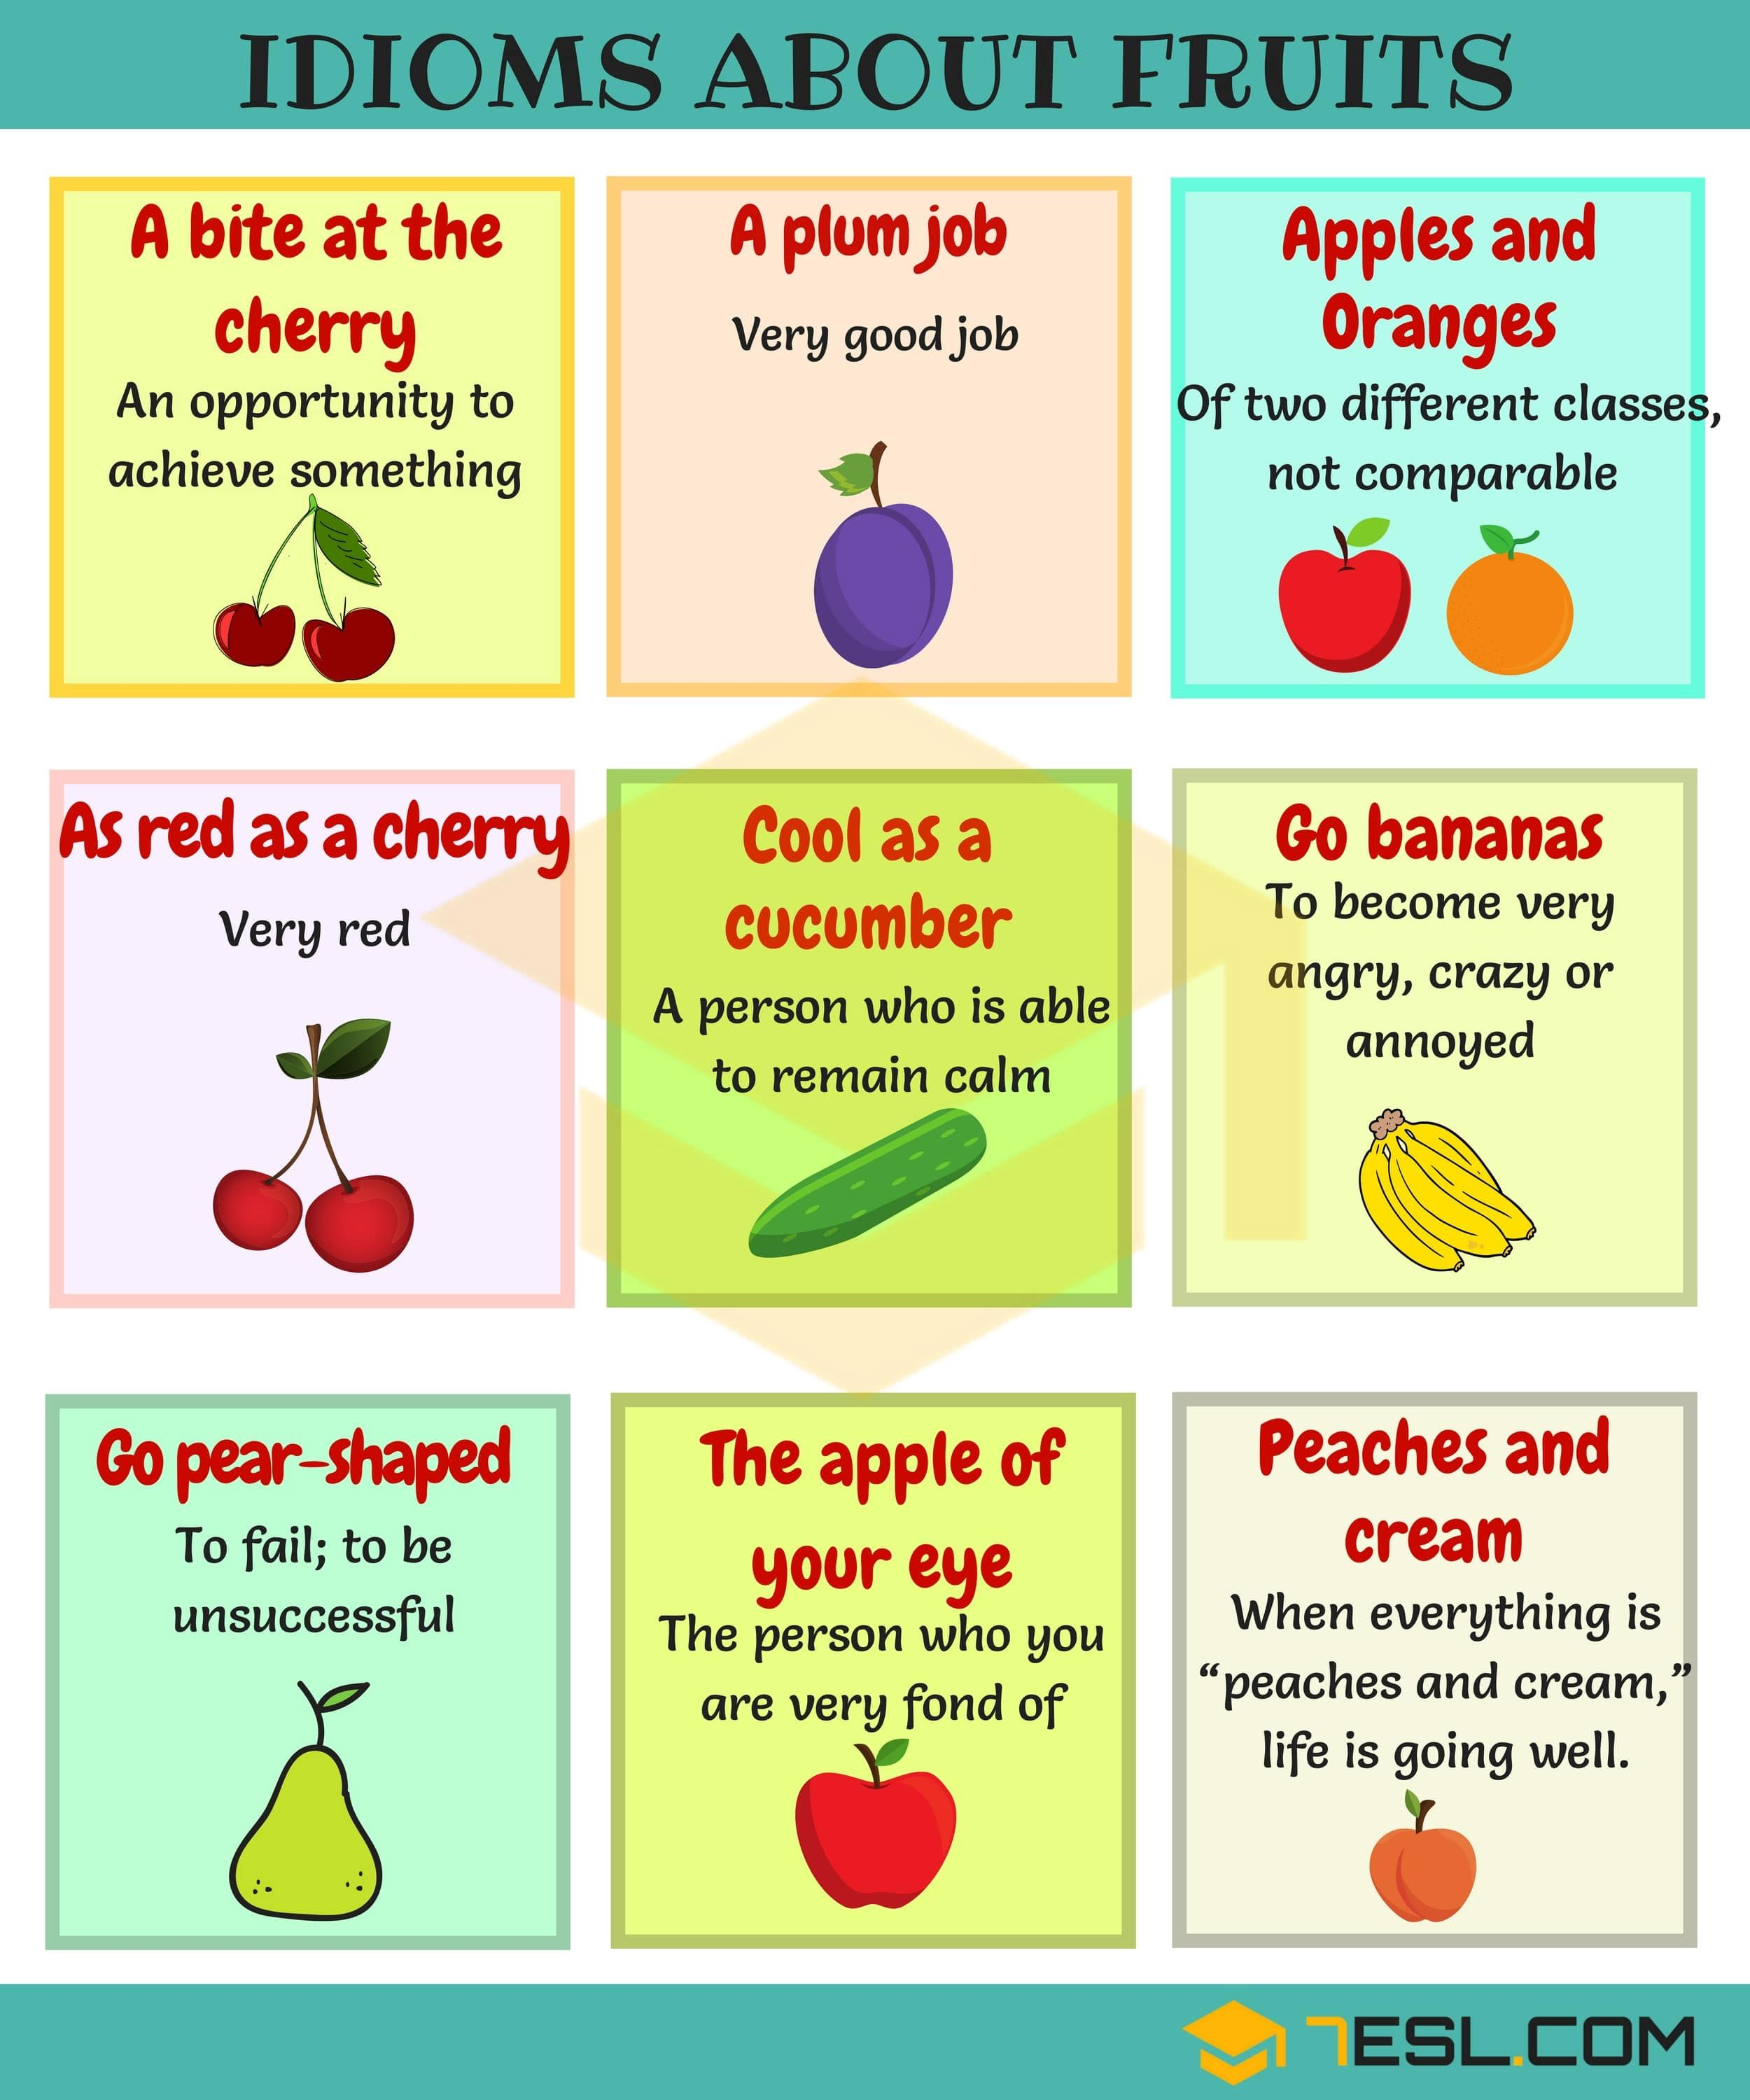 Cuisine Meaning English 25 Useful Idioms About Fruits In English Idioms And